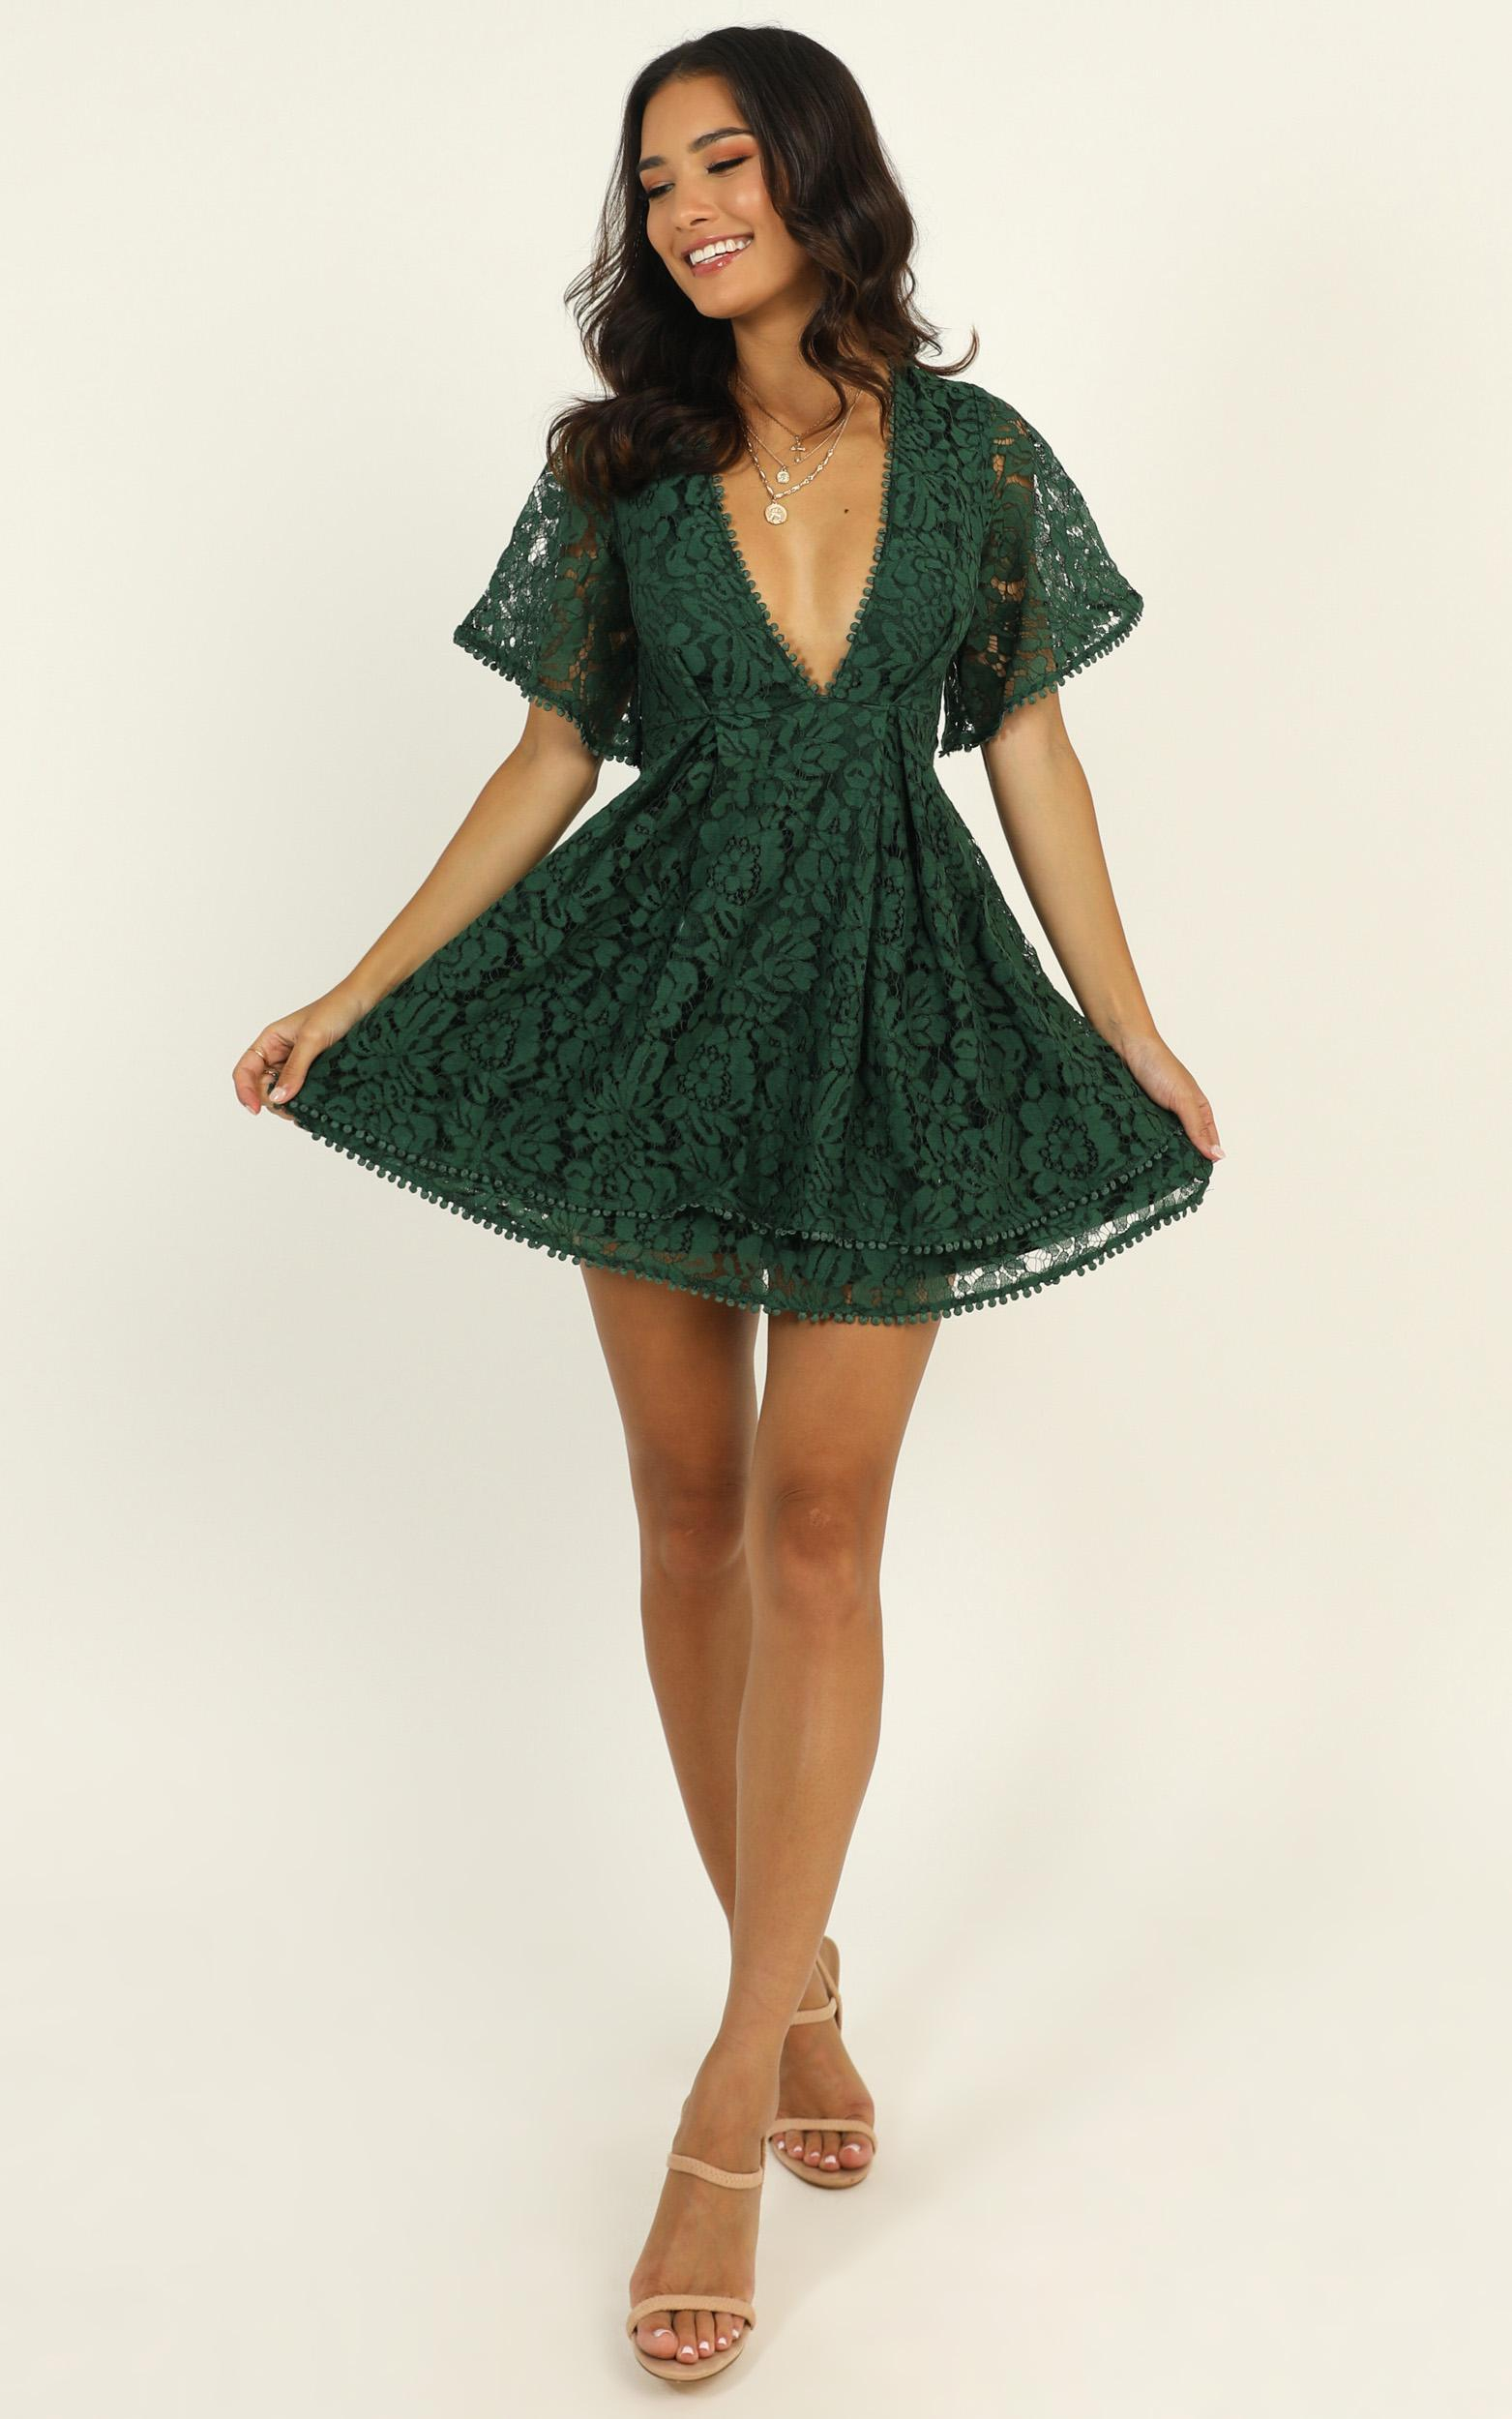 Do You Miss Me Dress in emerald lace - 18 (XXXL), Green, hi-res image number null